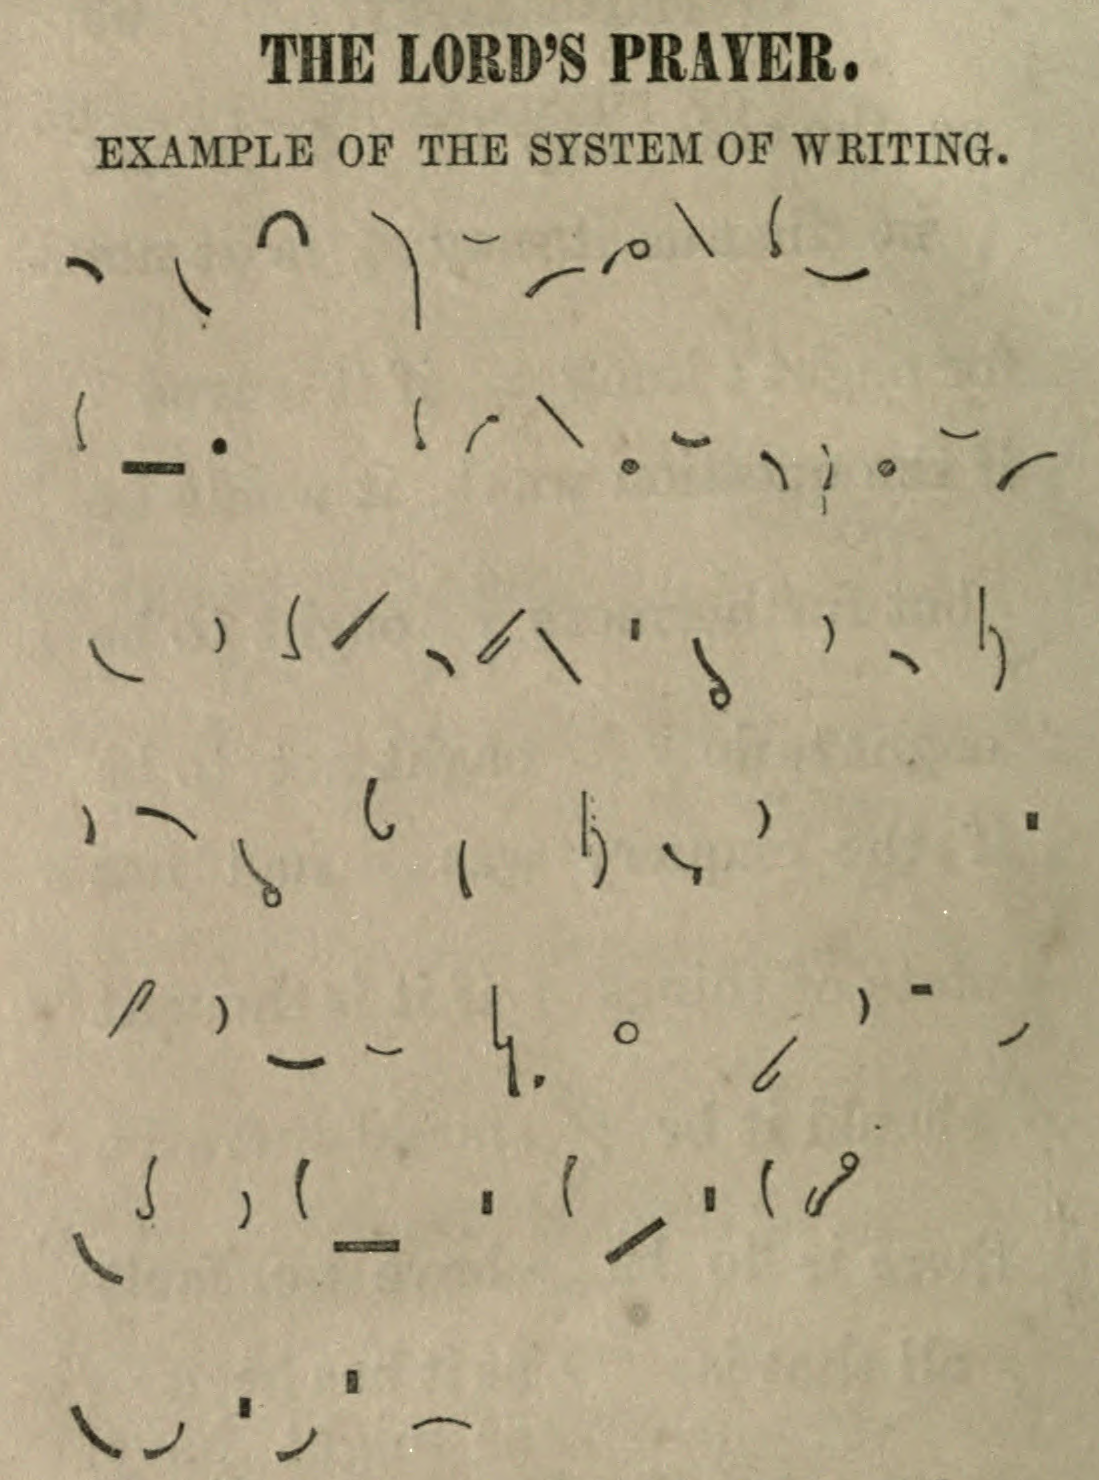 The Lords Prayer.Short-hand; phonography for the million. A new system, of kyriological phonogr... - #1858 #19th #century #code #lord's #nemfrog #prayer #shorthand #squiggles #writing